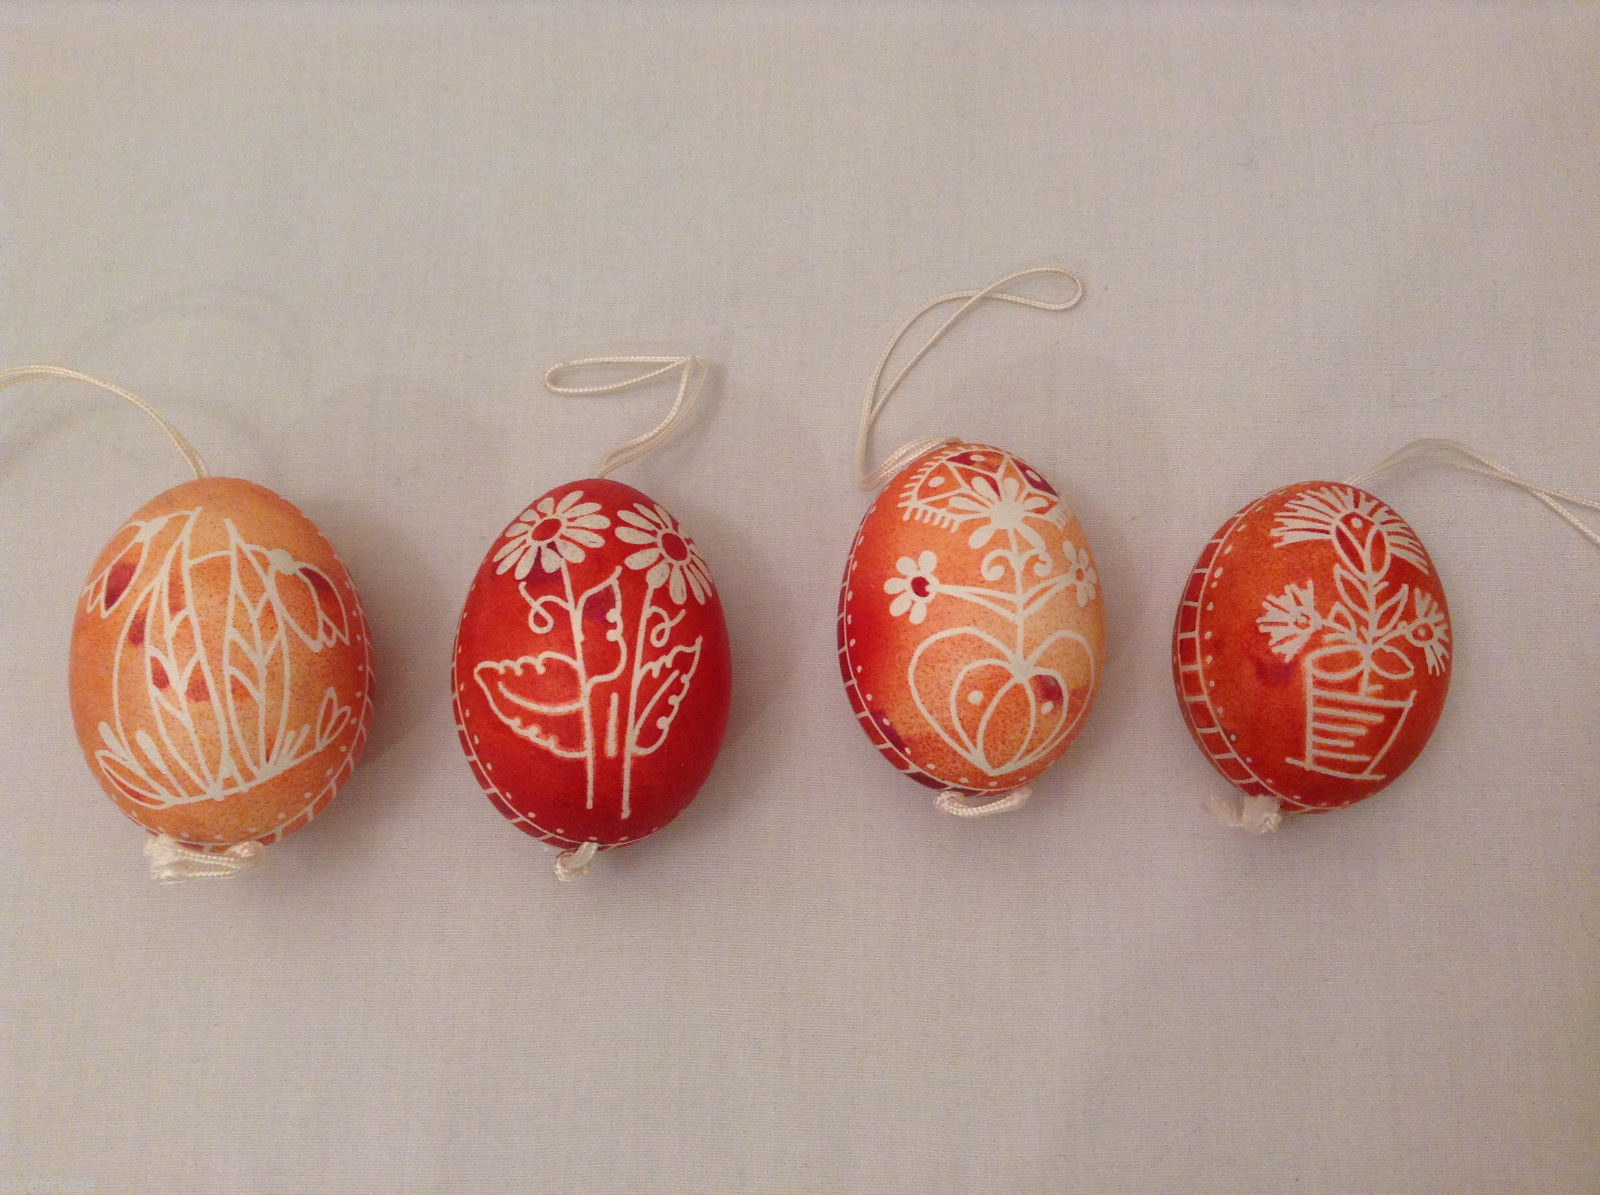 Set of 4 Red Wax-Resist Dyed Floral Flower Real Eggs Easter basket stuffer